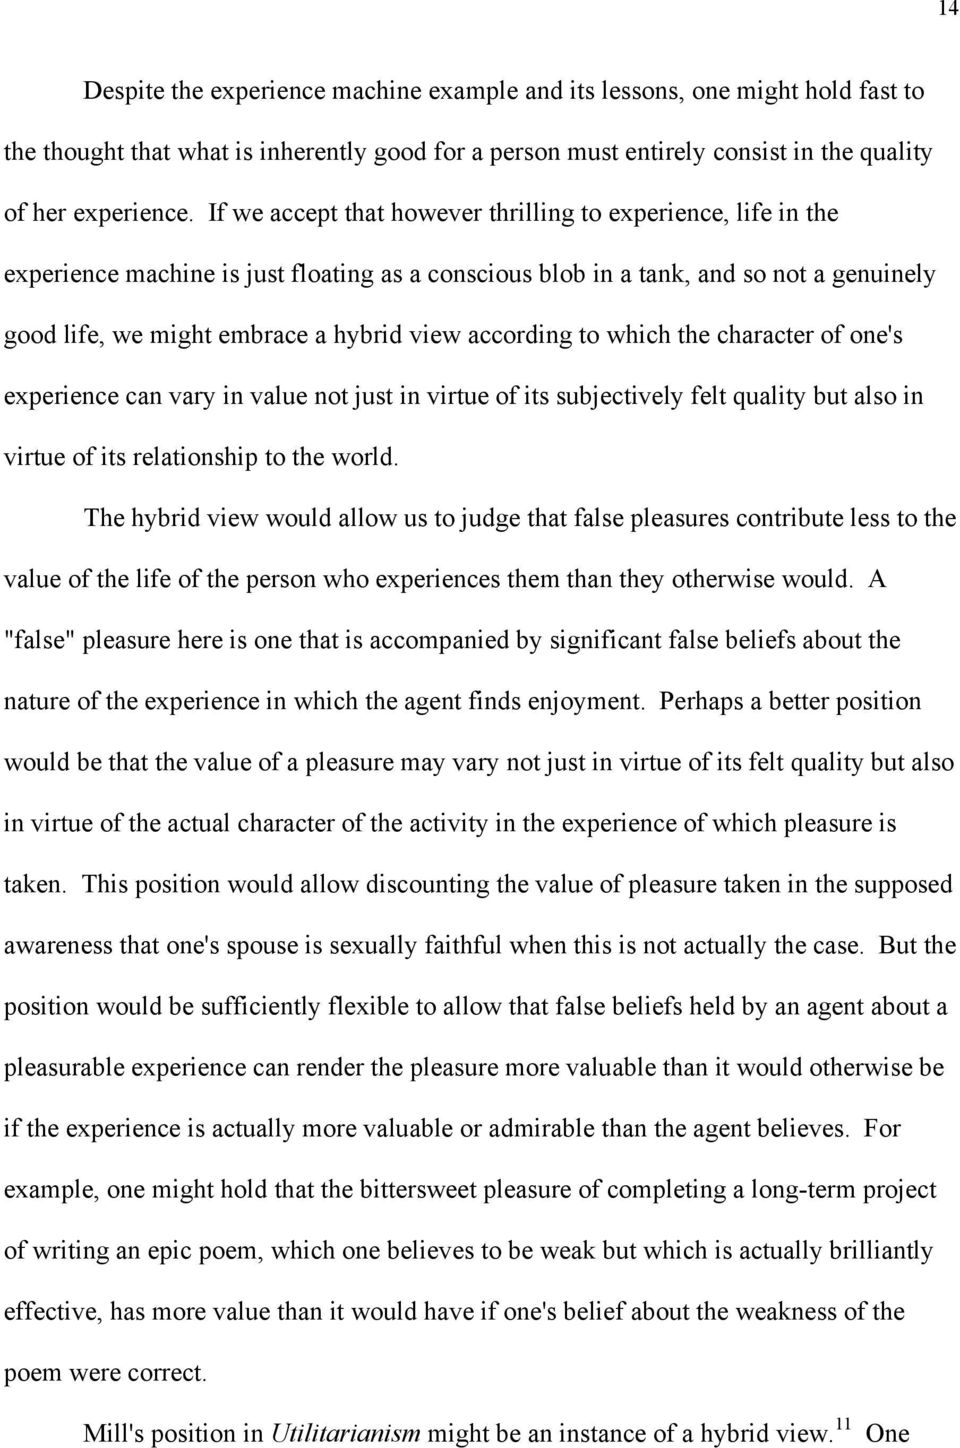 according to which the character of one's experience can vary in value not just in virtue of its subjectively felt quality but also in virtue of its relationship to the world.